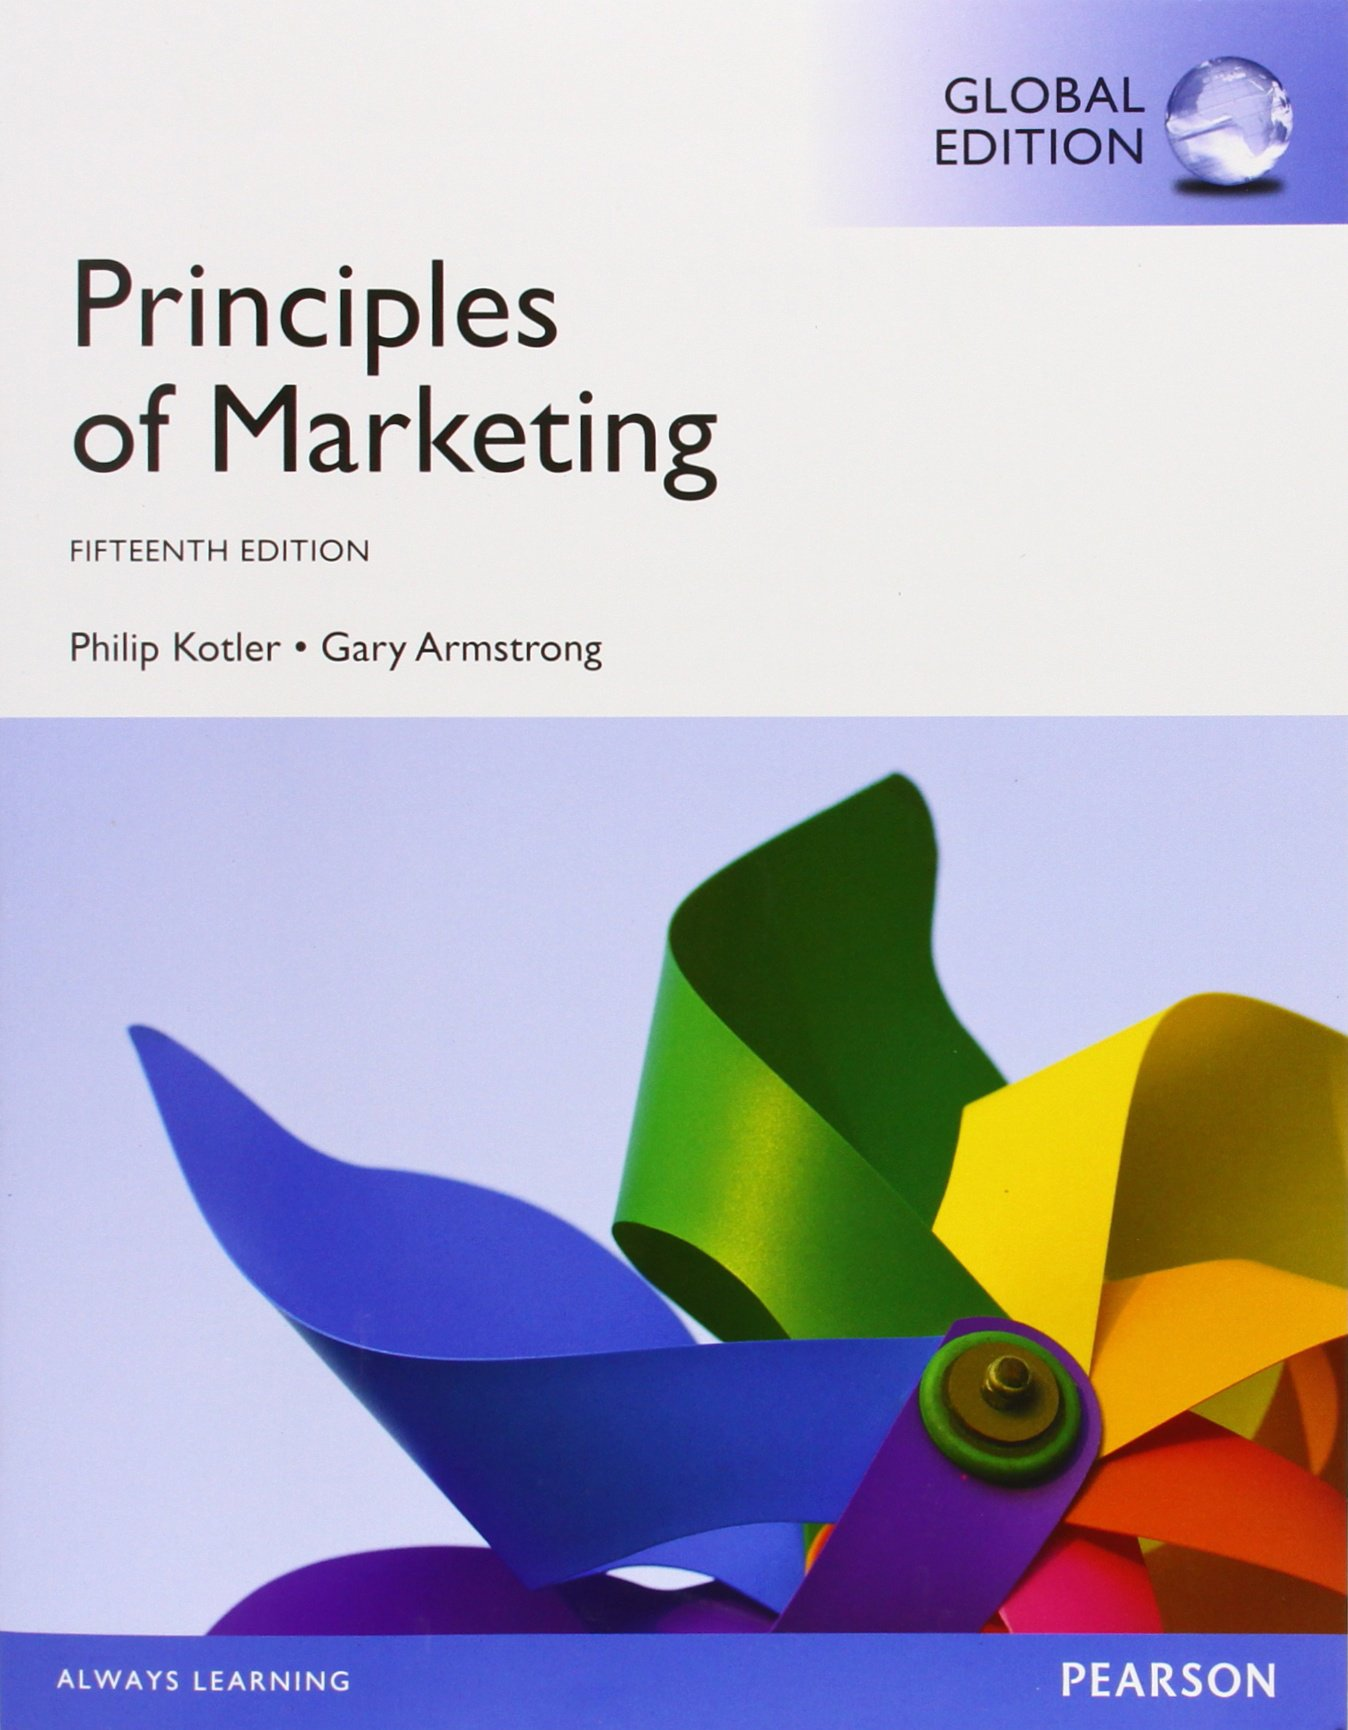 introduction to principles of marketing